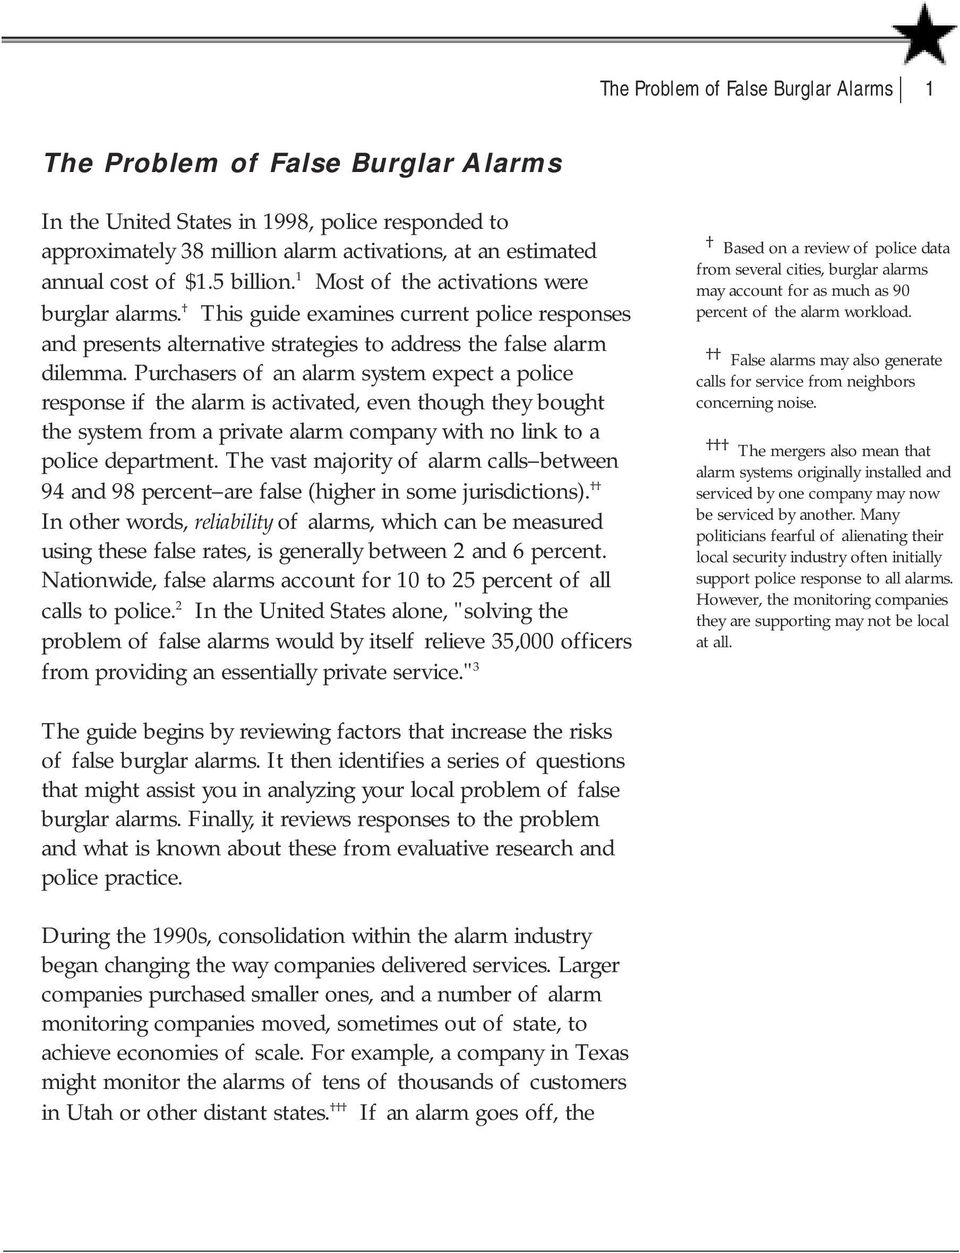 Purchasers of an alarm system expect a police response if the alarm is activated, even though they bought the system from a private alarm company with no link to a police department.